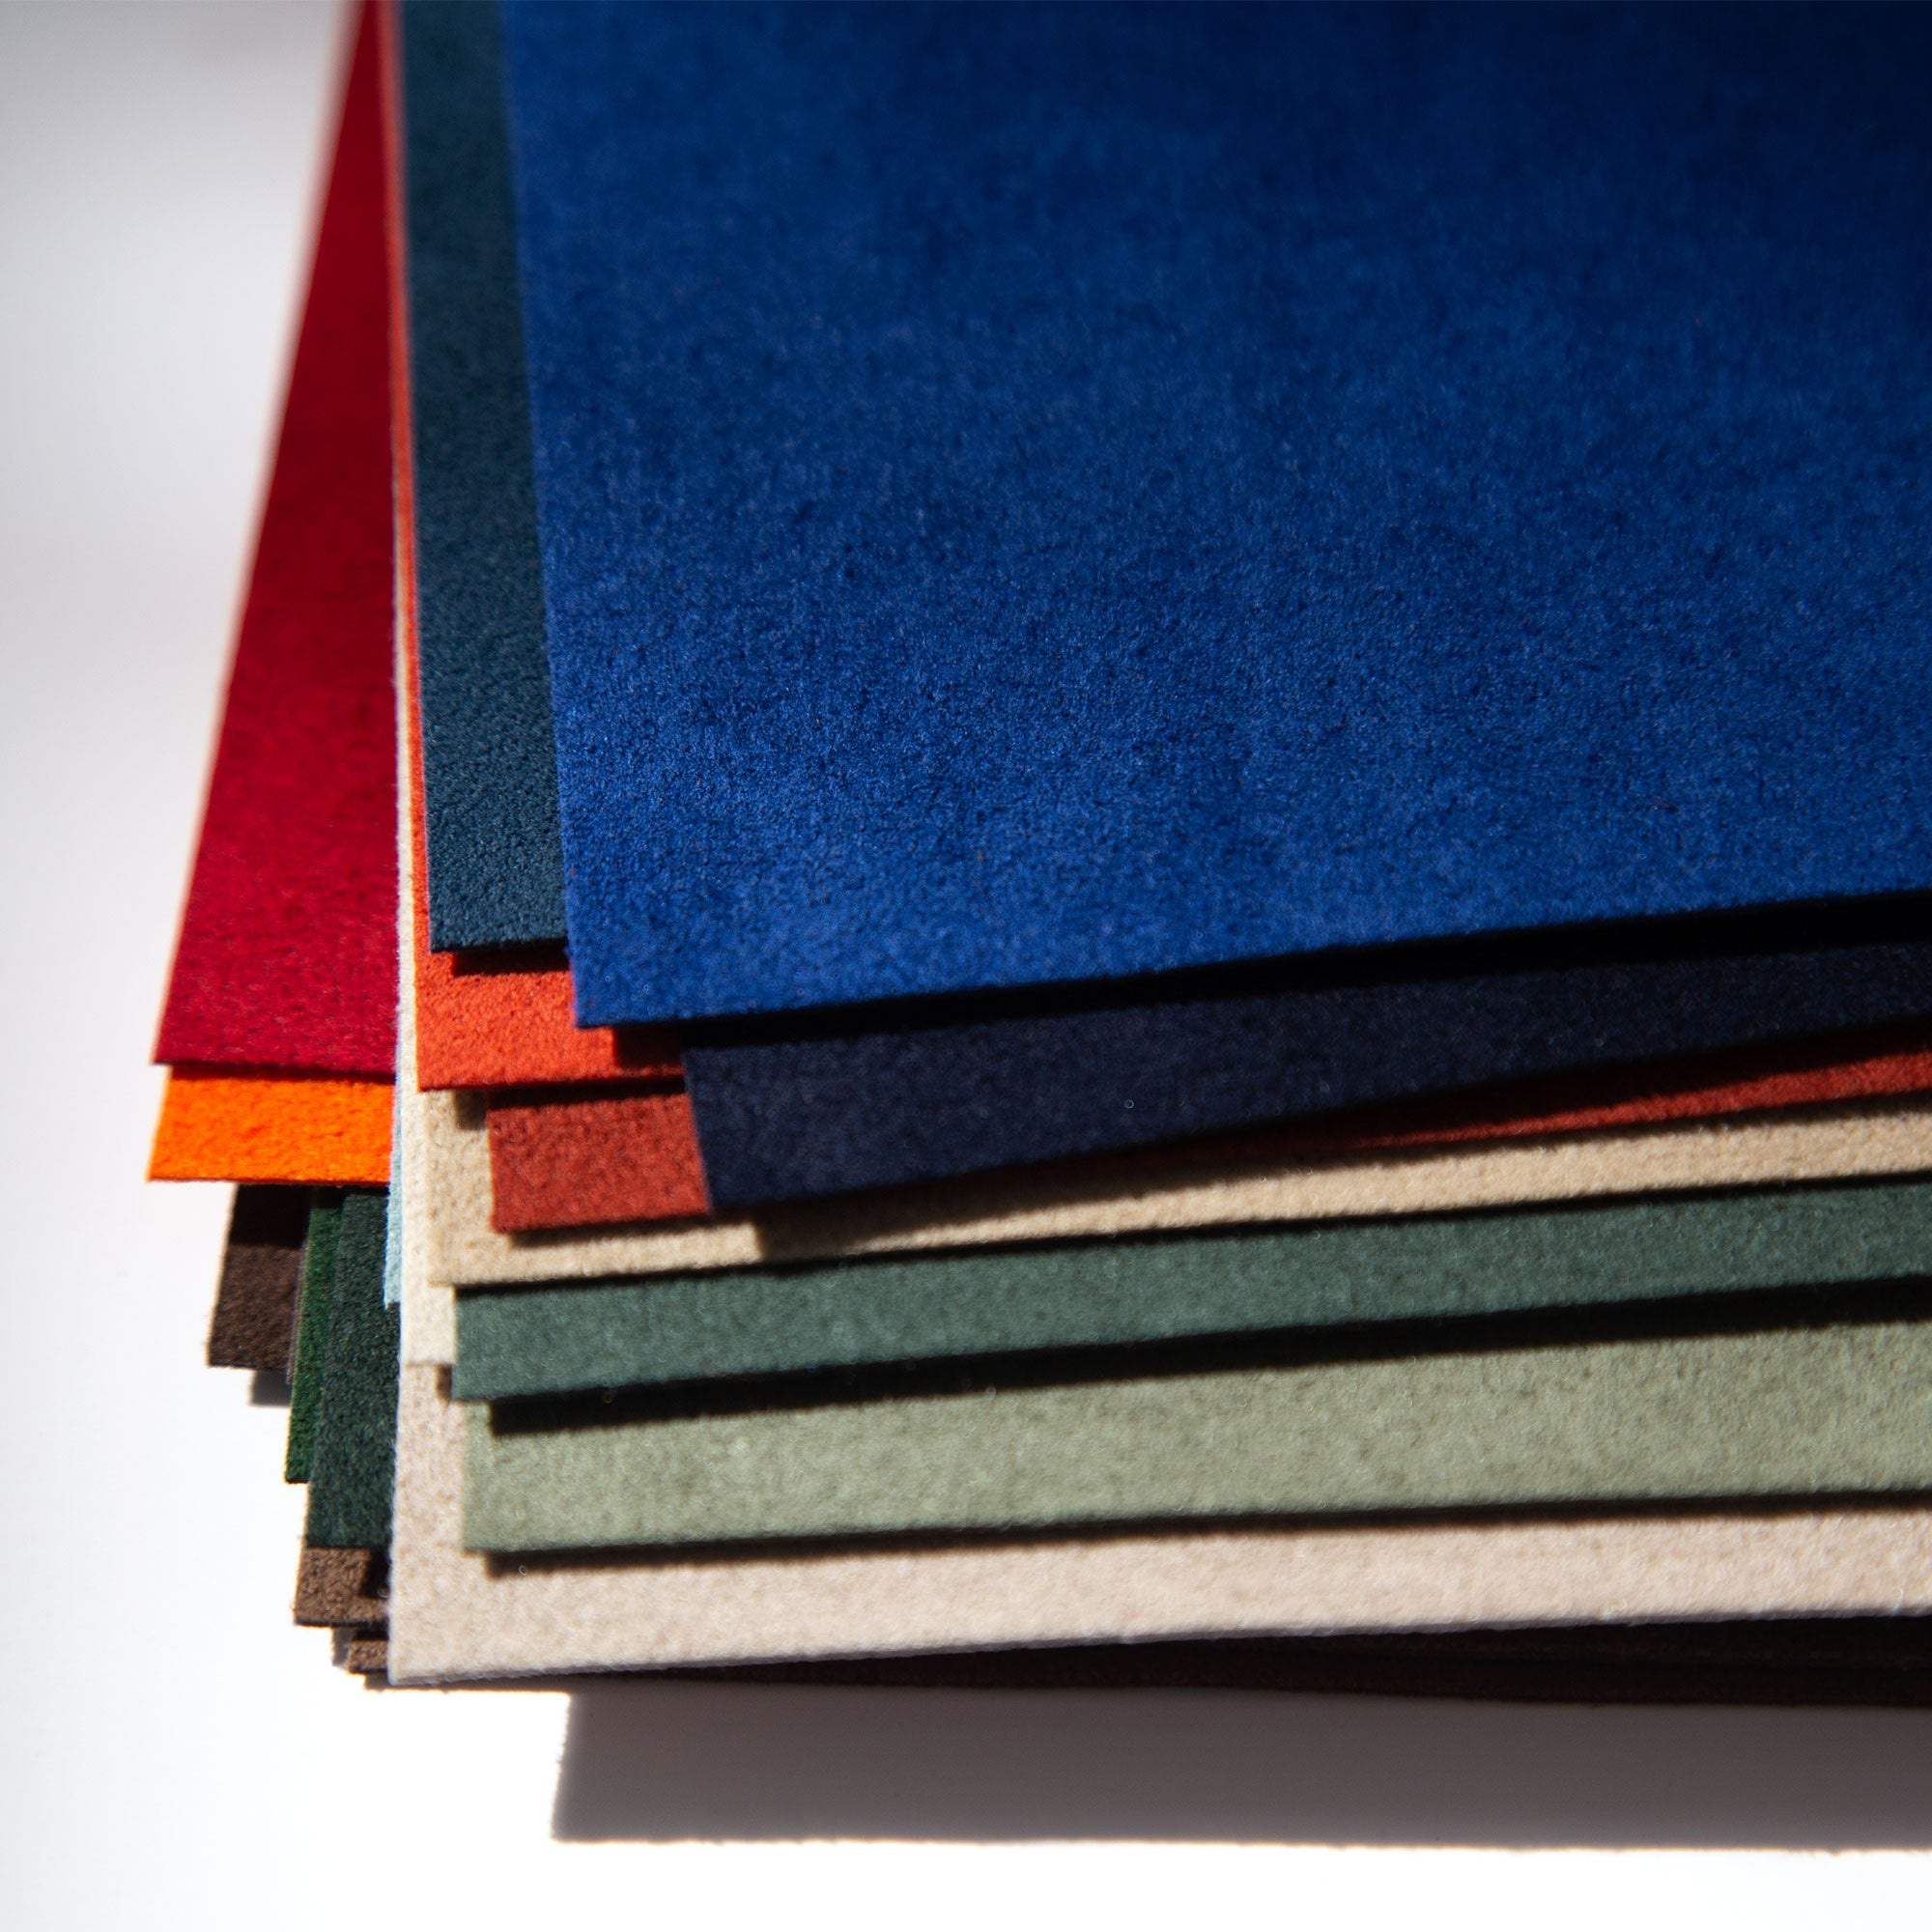 Alcantara available in different colors